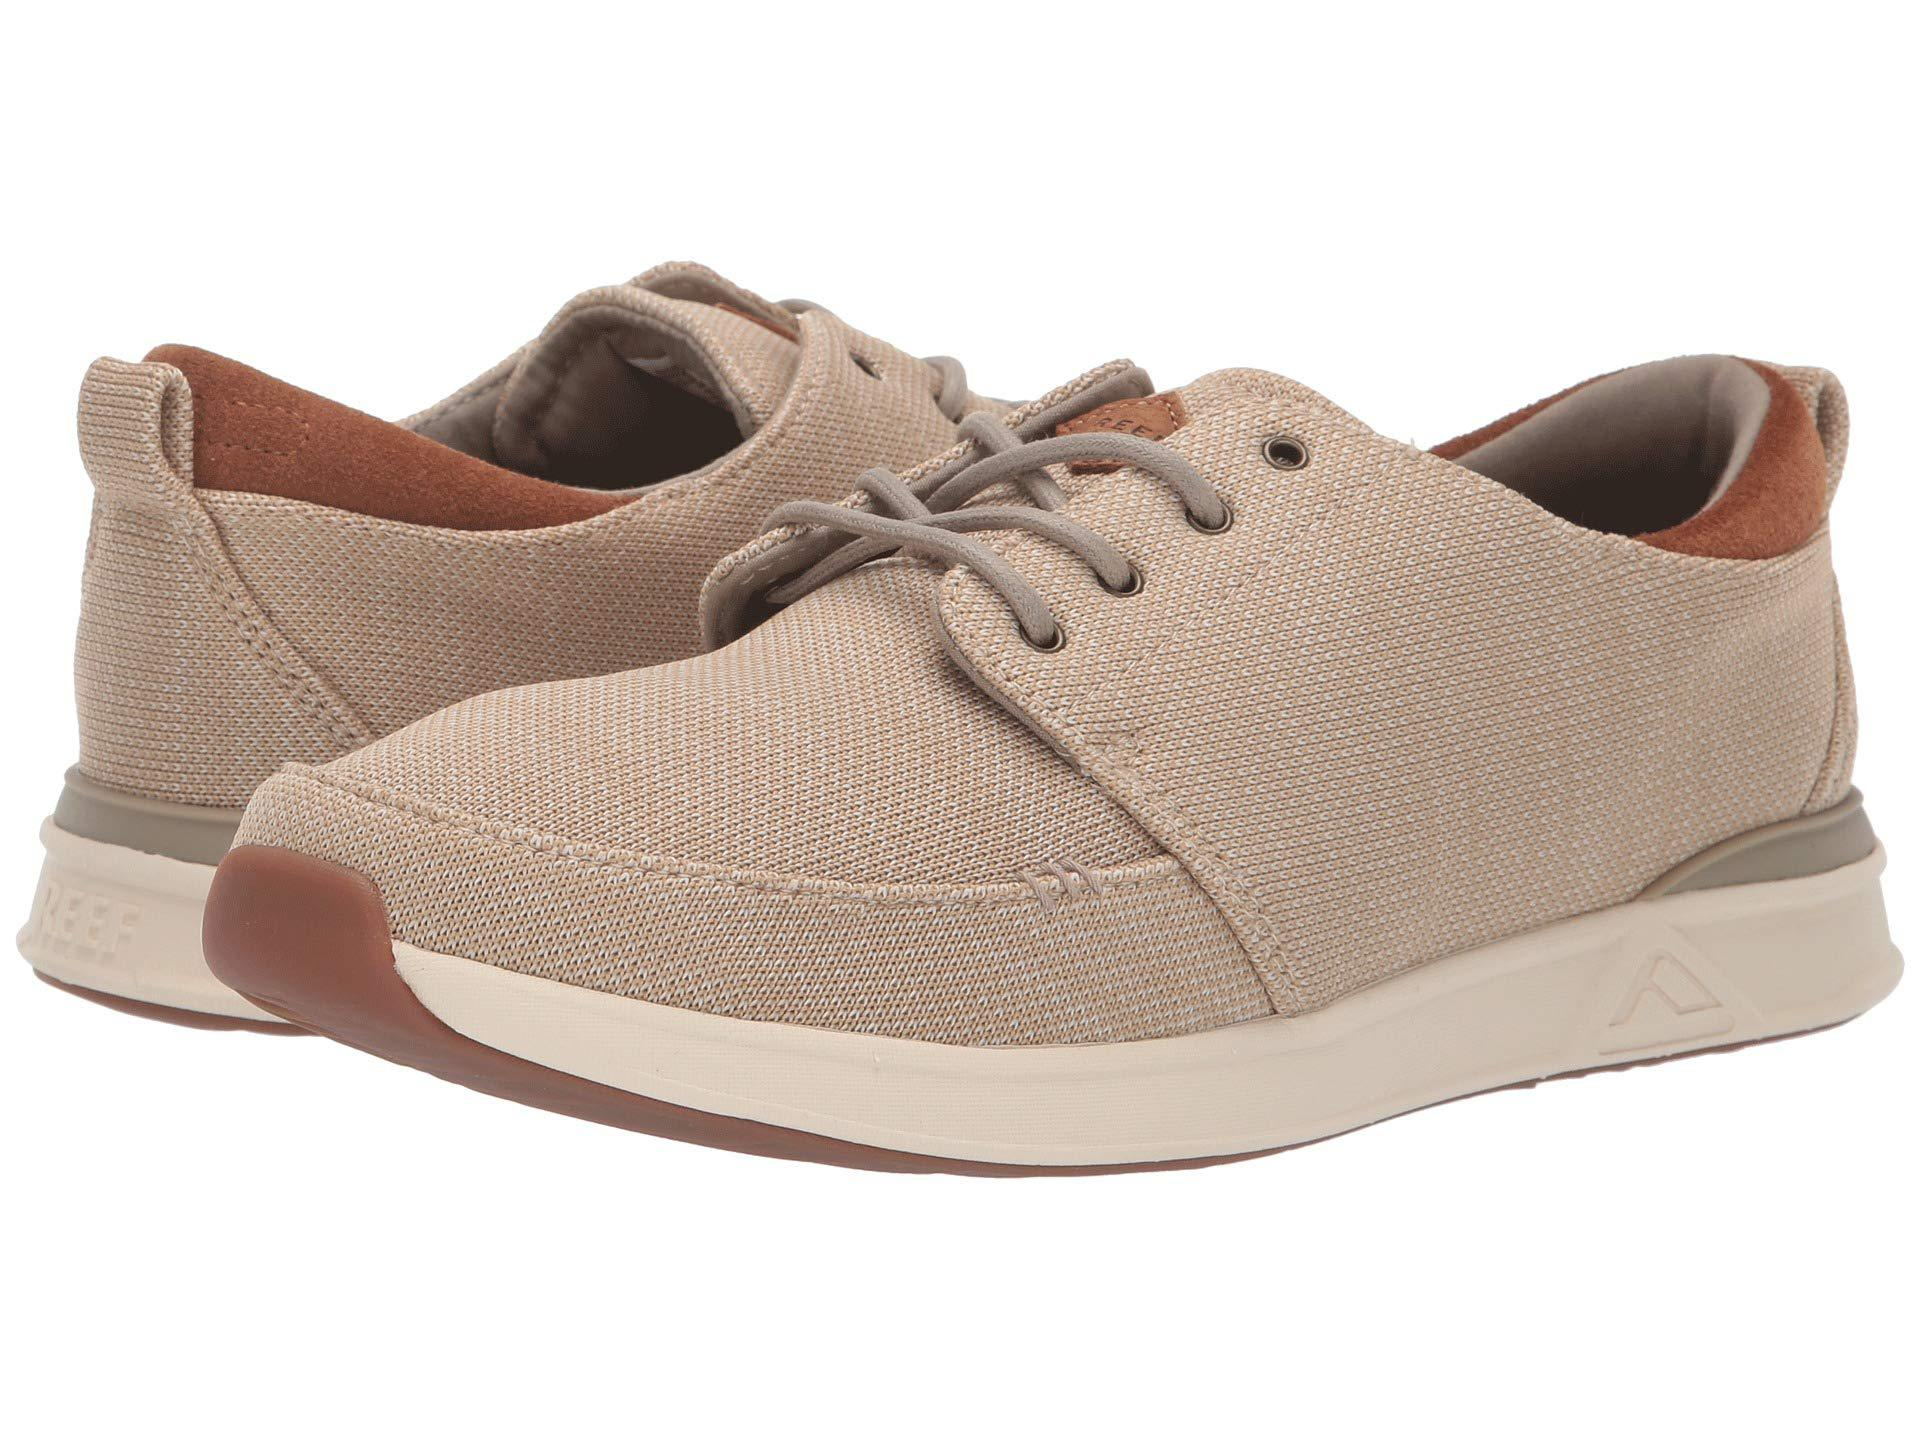 3d18afa140db Lyst - Reef Rover Low Tx (grey heather) Men s Shoes in Natural for ...